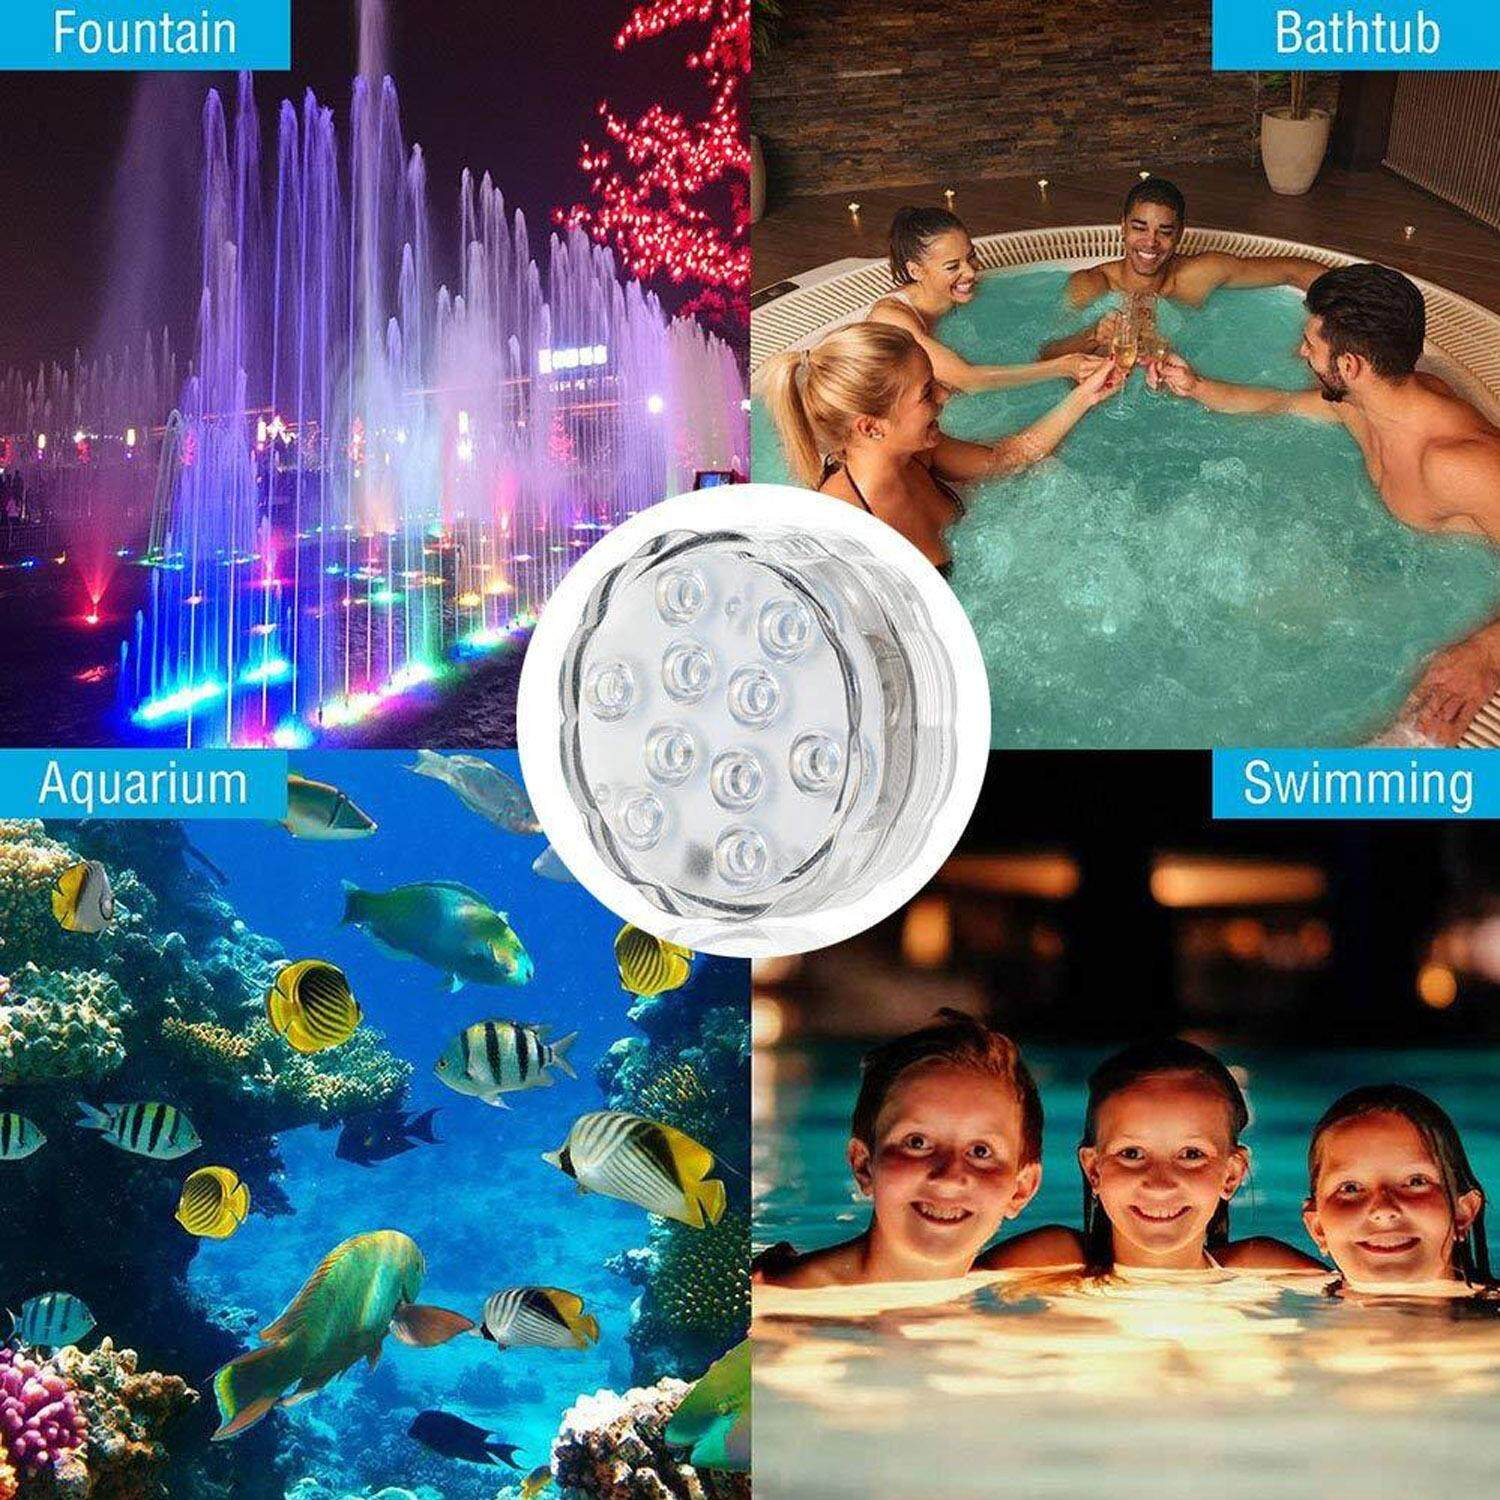 Vococal 4pcs 10-Led Battery Operated Underwater Submersible Lights + 4pcs Remote Controls For Aquarium Vase Flower Pot Pond Pool Waterfall Bathroom By ...